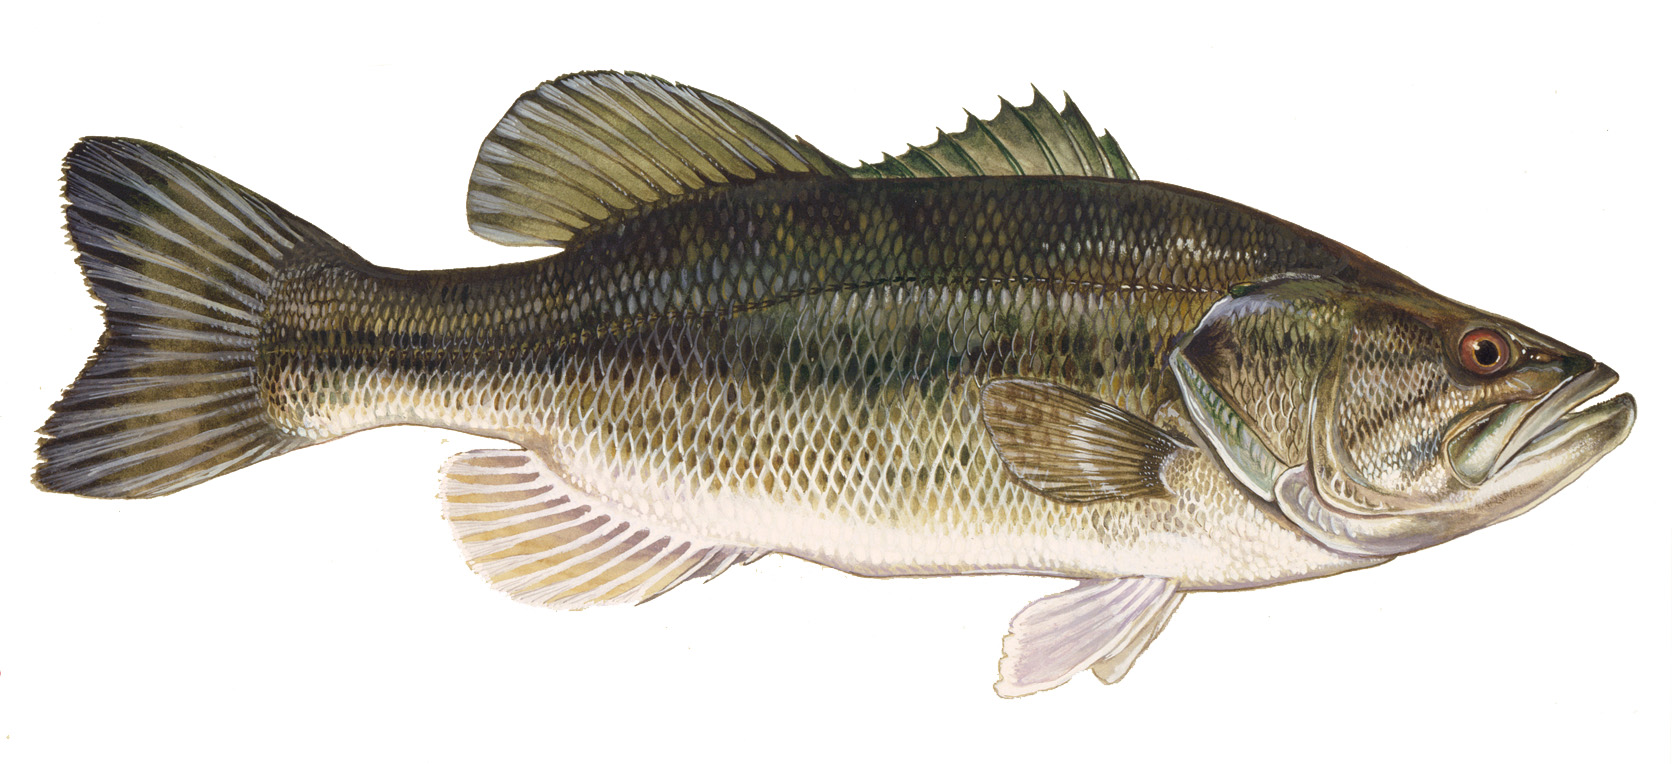 Bass fish photo and wallpaper Cute Bass fish pictures 1672x764